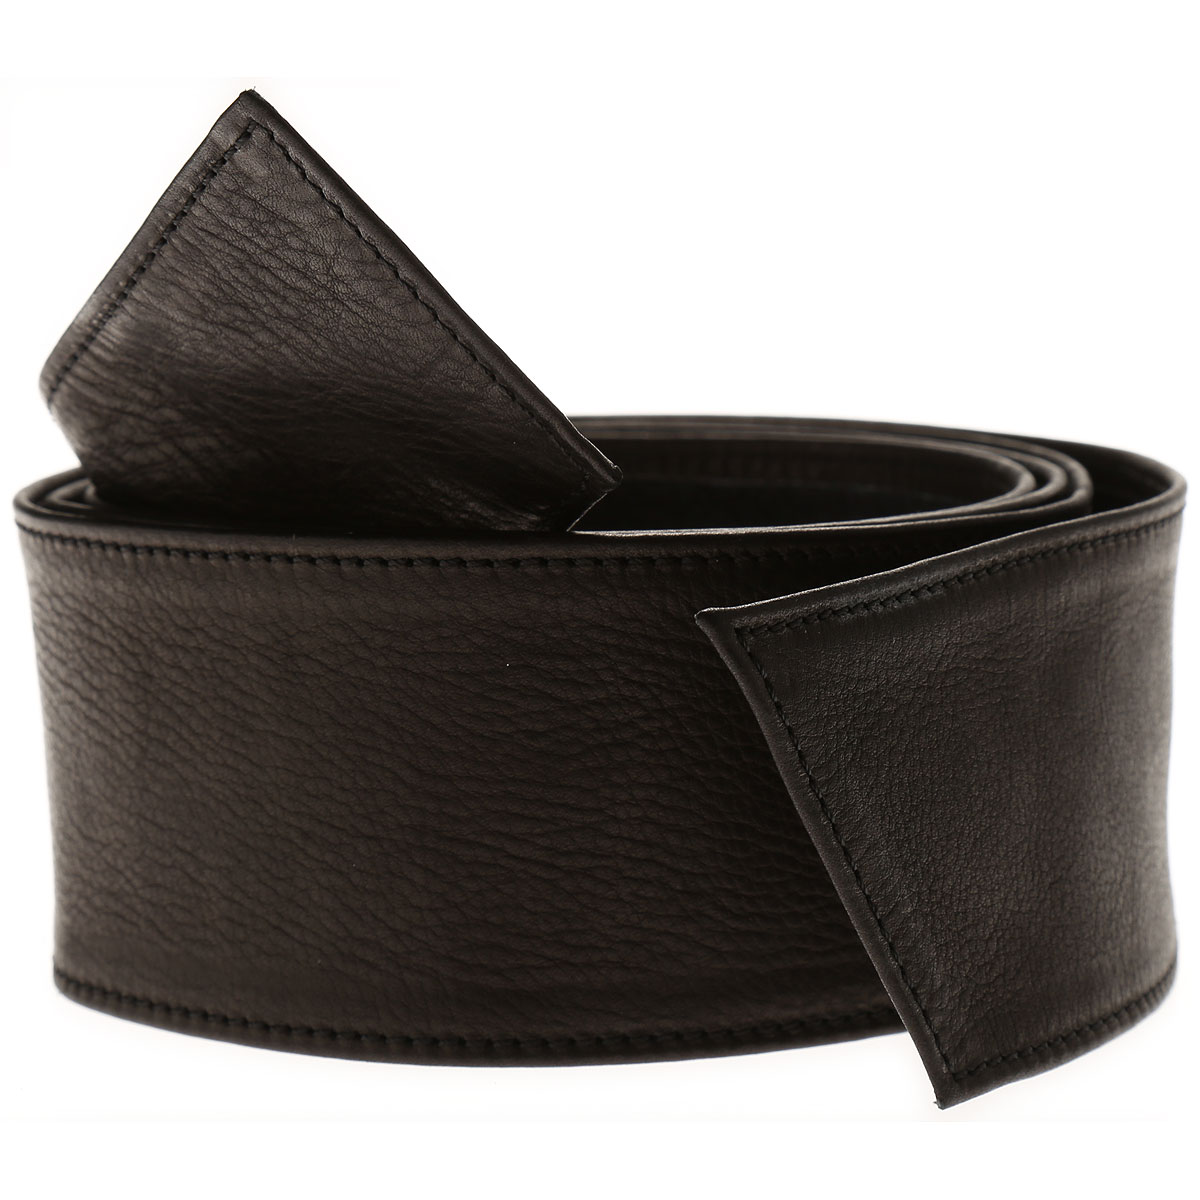 Gianni Chiarini Womens Belts On Sale in Outlet, Black, Genuine Leather, 2019